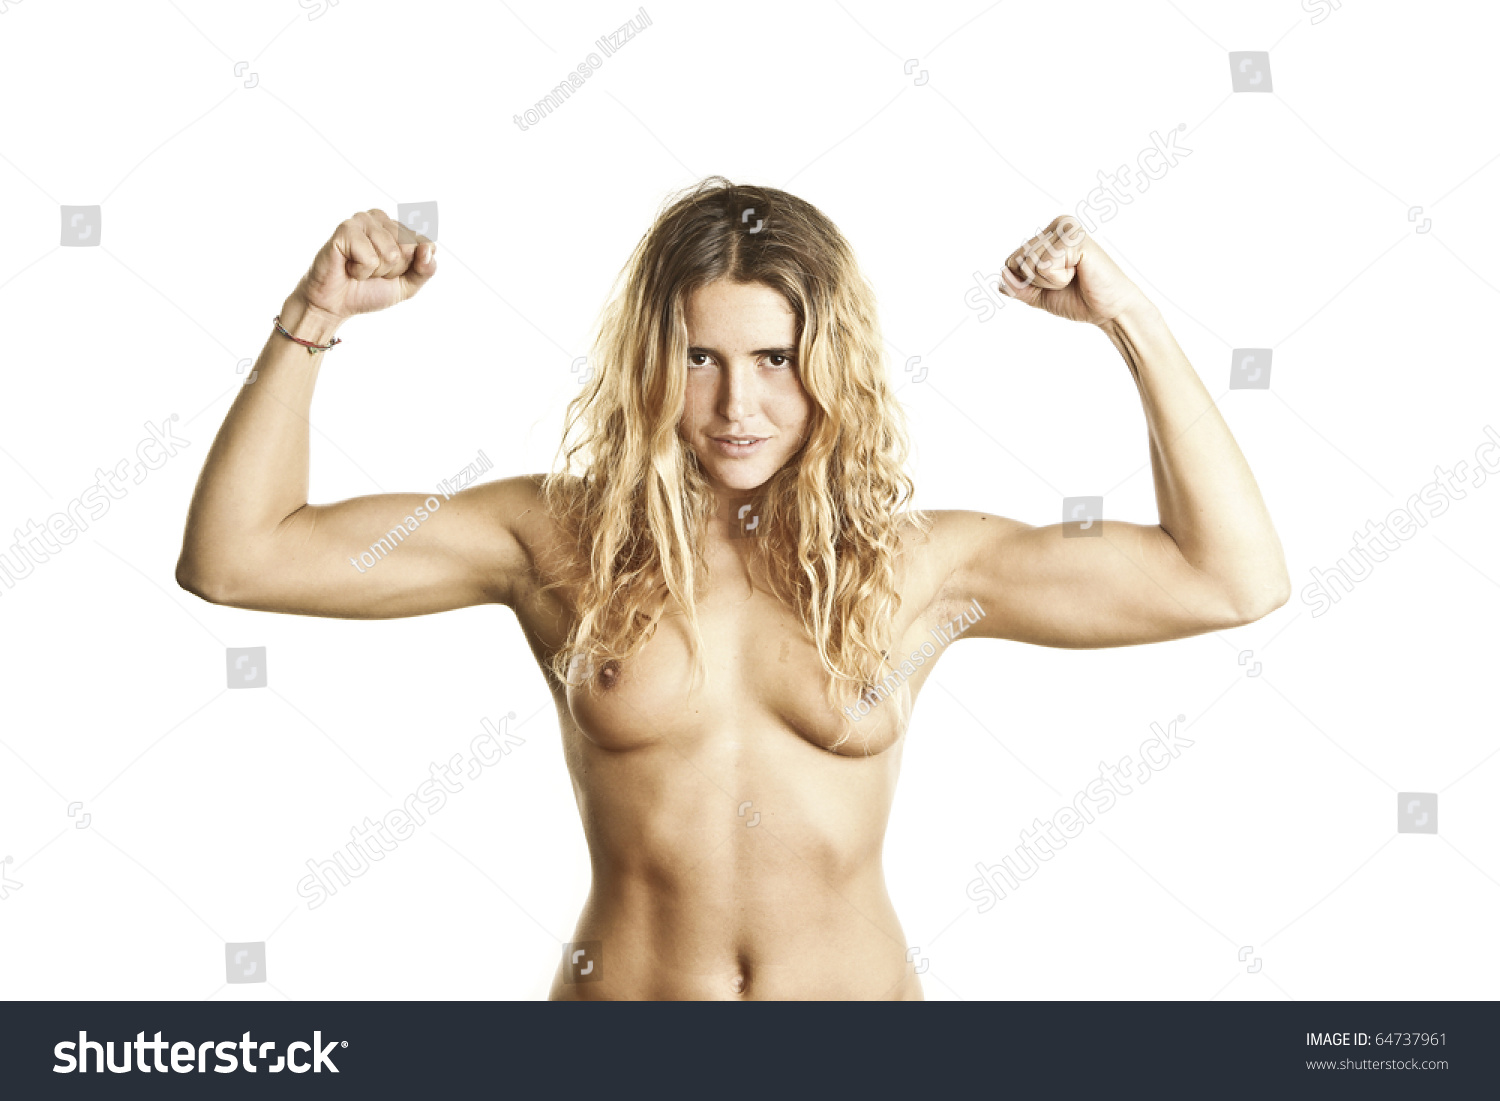 Question Young girls showing muscles